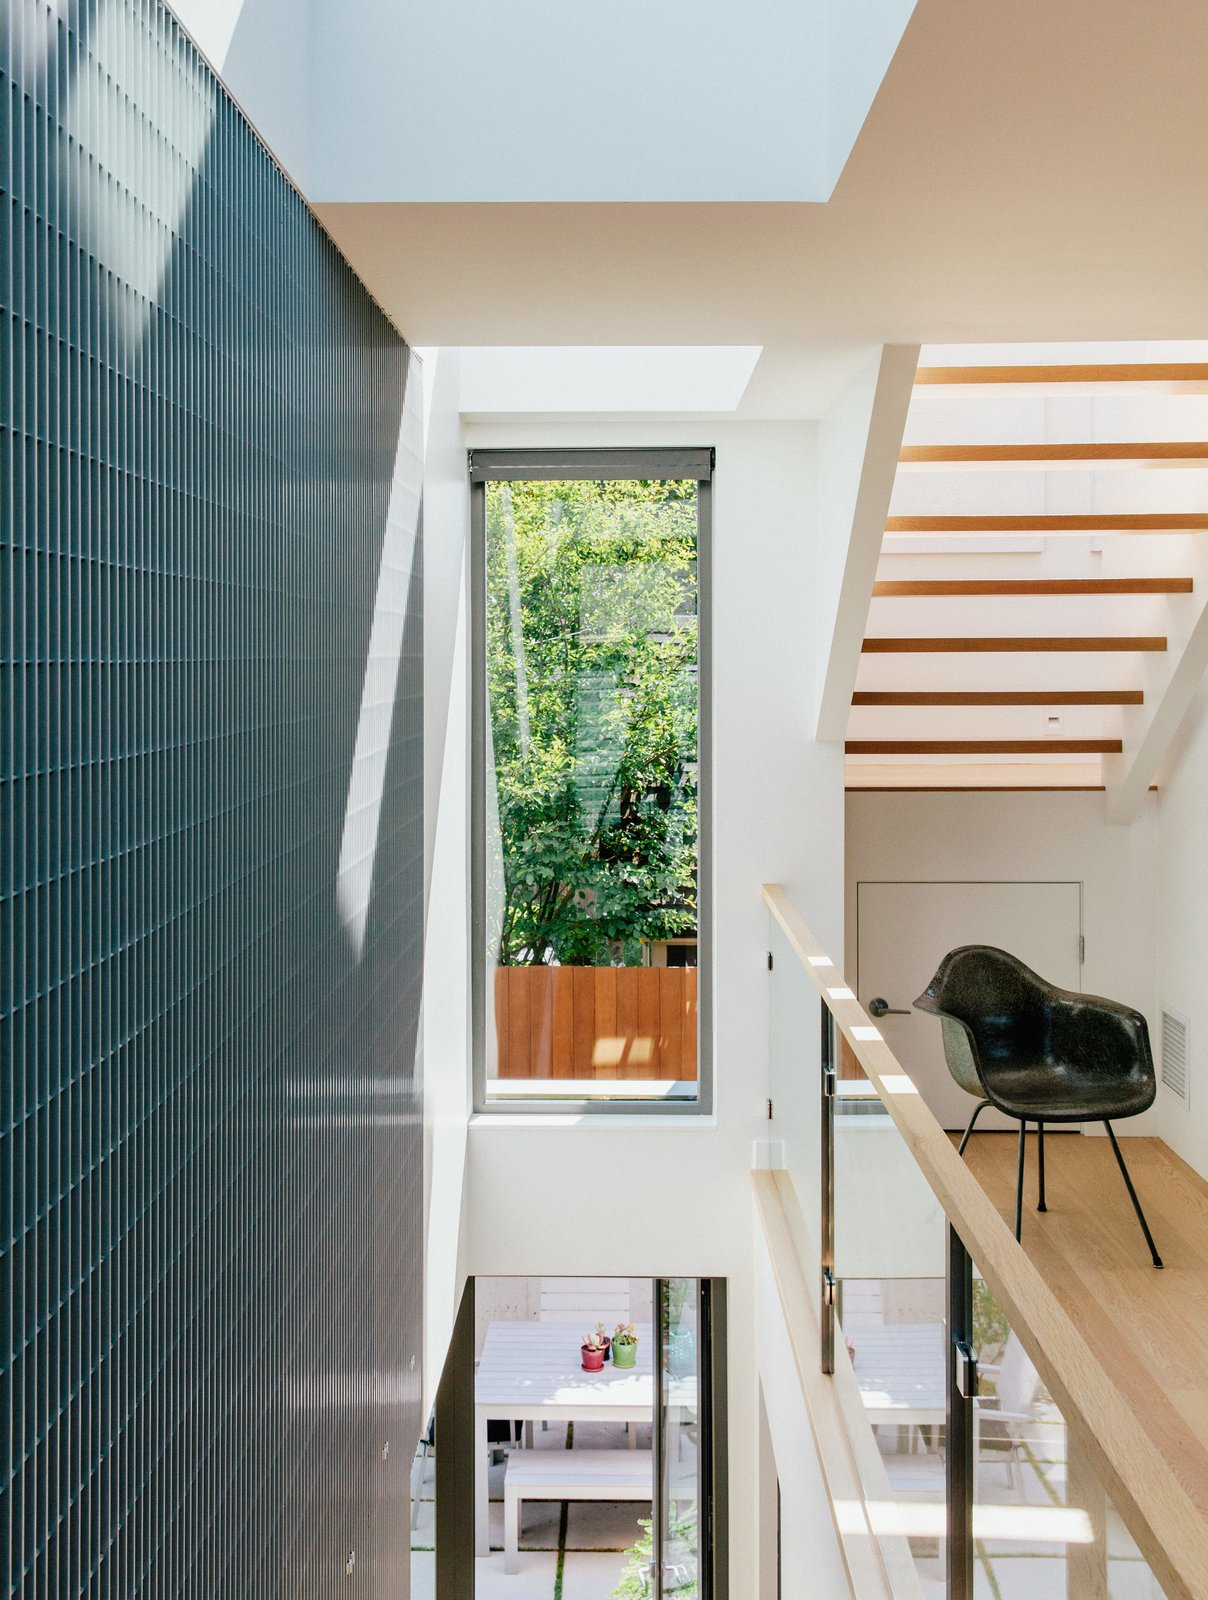 The laneway house features Kentwood engineered-wood floors, Cascadia windows, and aluminum-bar grating. The Eames DAX chair is vintage.